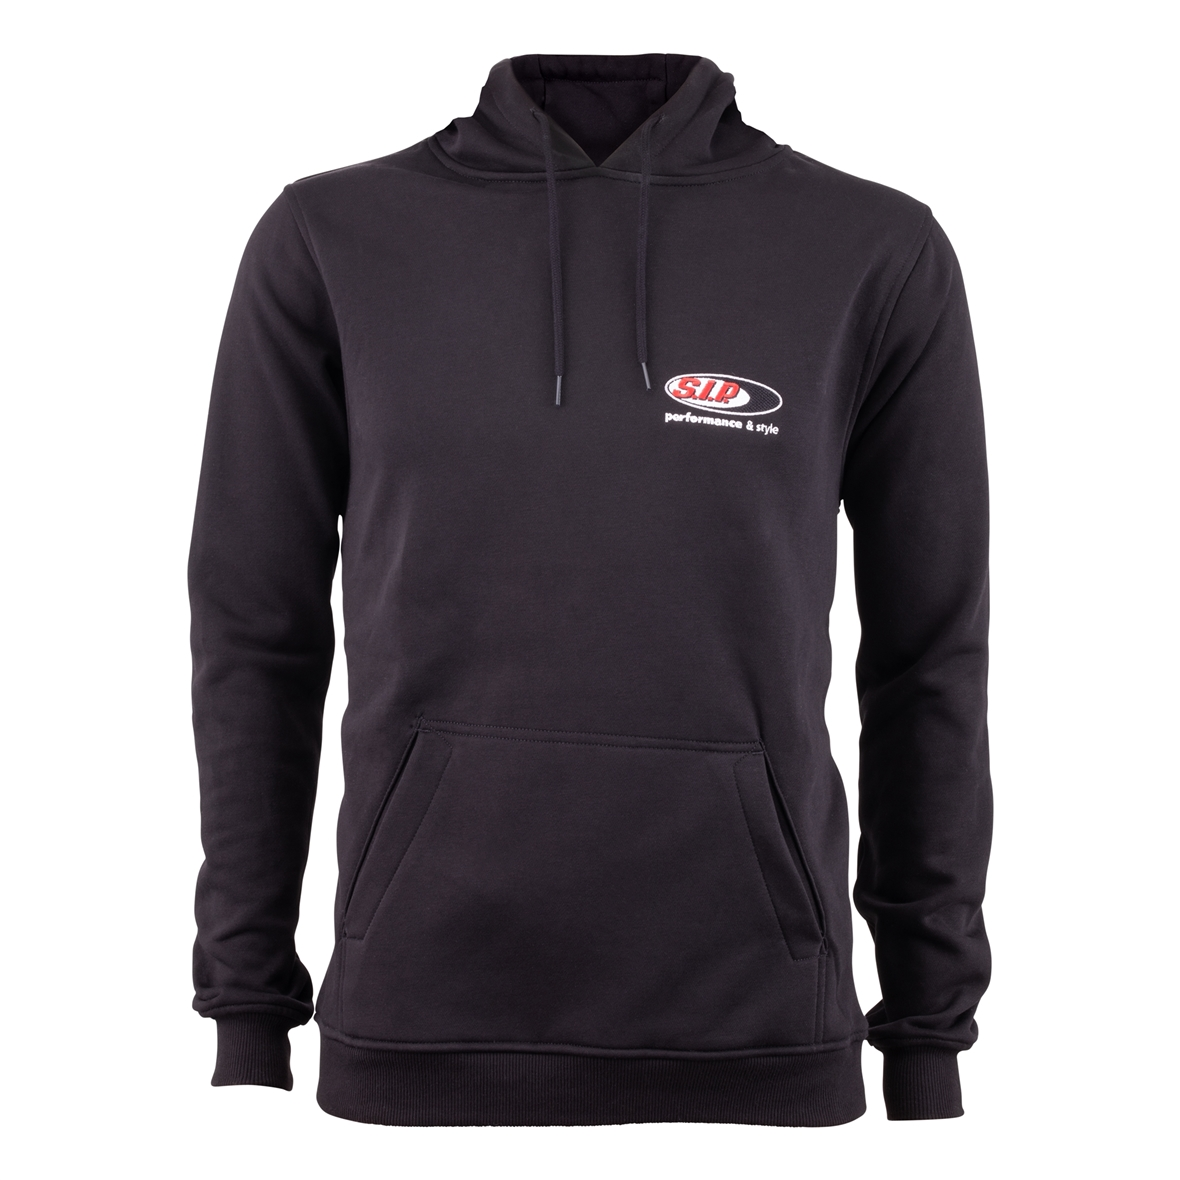 Product Image for 'Hoodie SIP Performance & Style size STitle'